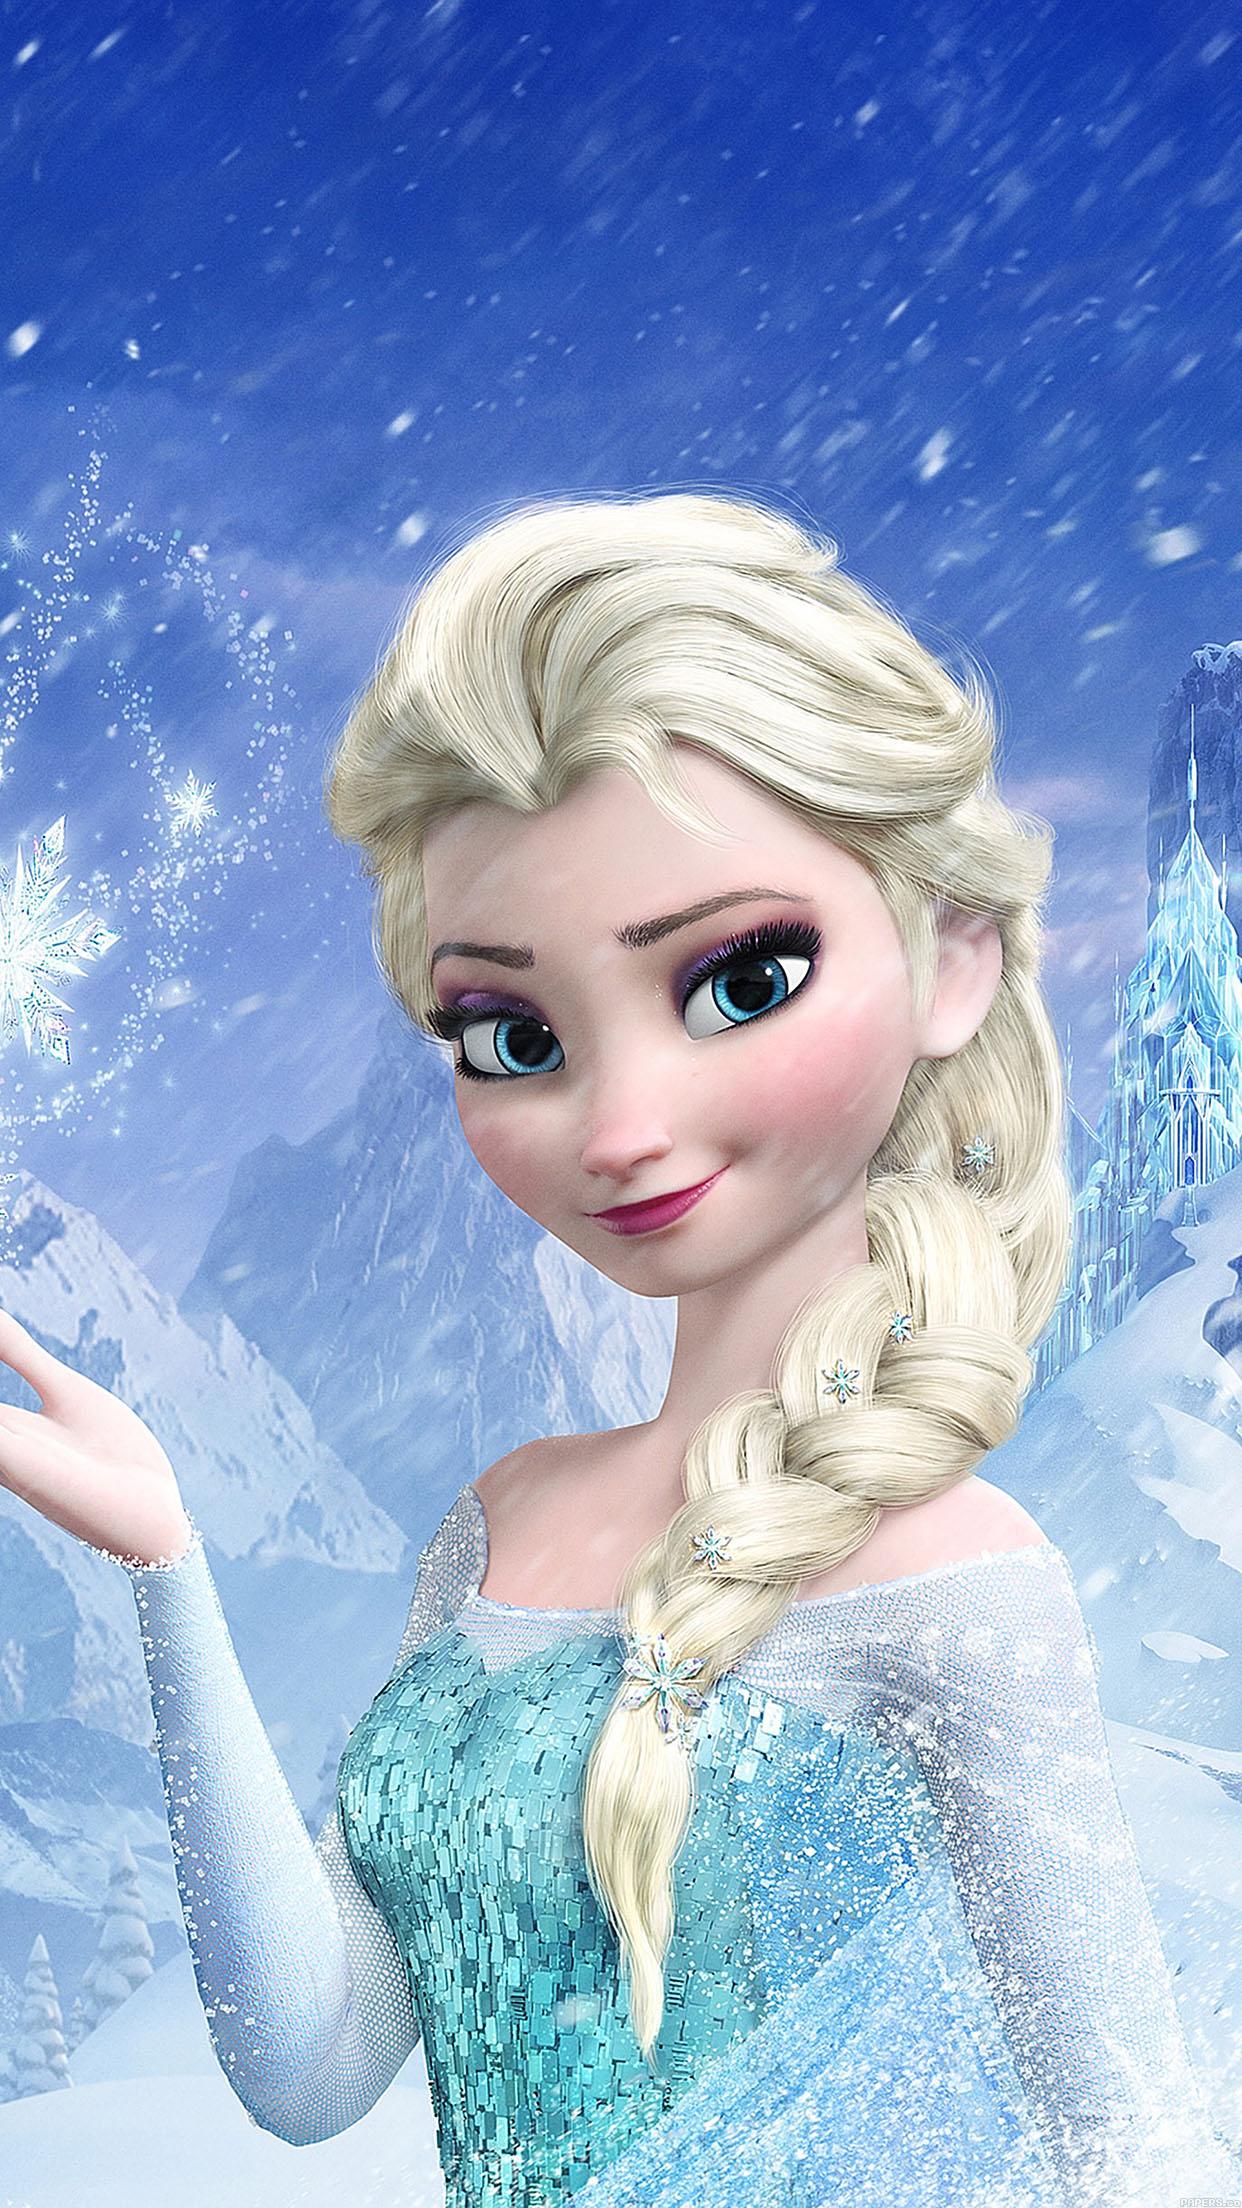 Elsa Frozen Queen Illus Filmt Disney Art Android wallpaper